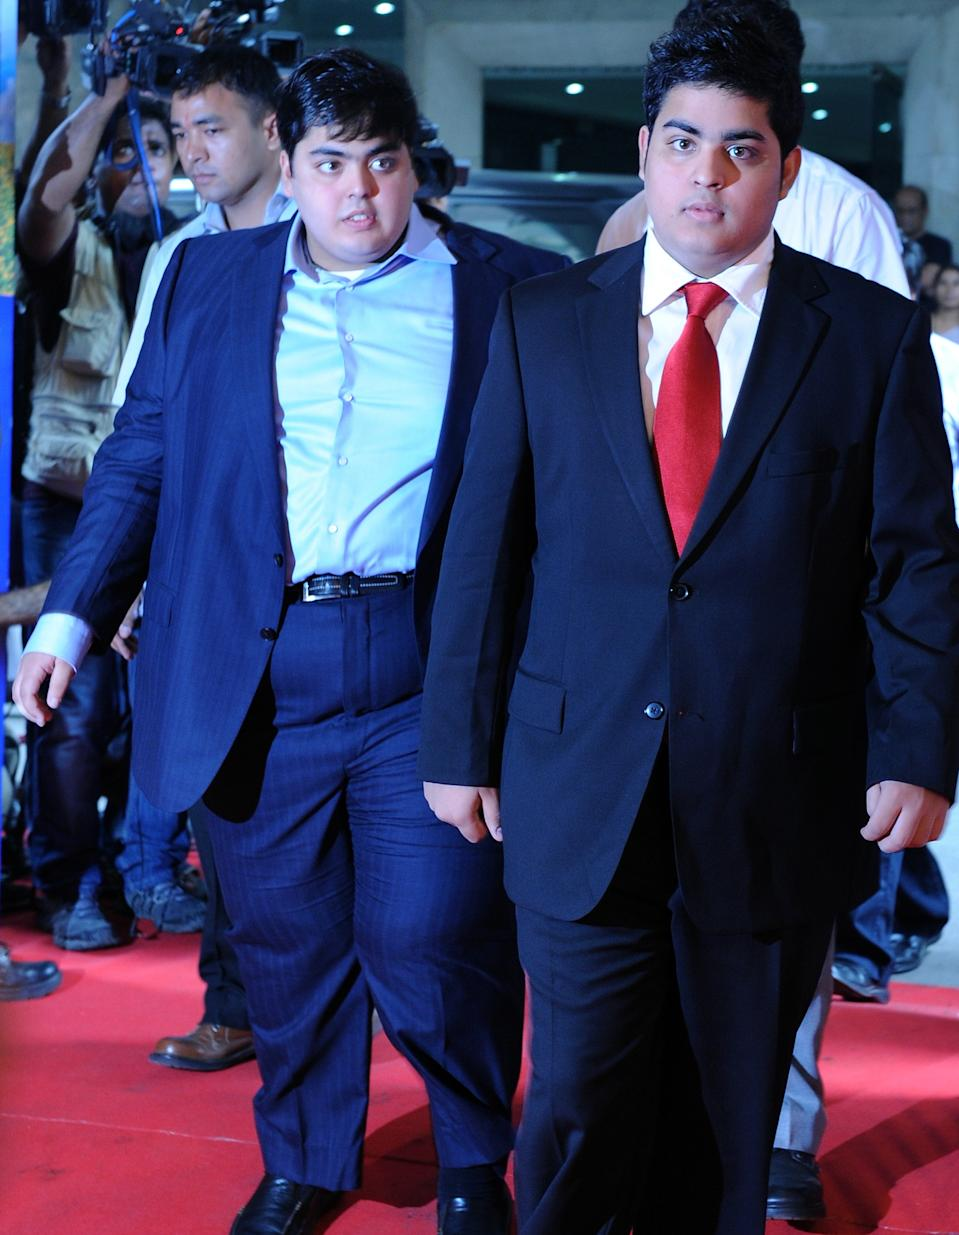 "The sons of Reliance Industries Chairman Mukesh Ambani, Anant (L) and Akash (R) arrive for the company's annual general meeting in Mumbai on June 3, 2011. India's largest private firm Reliance Industries plans to become completely debt-free in the financial year, its chairman Mukesh Ambani announced. Ambani, India's richest man, said Reliance planned to ""significantly enhance its ranking amongst global businesses"" as economic growth expands in India, with an aim to ramp-up its existing oil and gas and retail businesses further. AFP PHOTO/ Indranil MUKHERJEE (Photo credit should read INDRANIL MUKHERJEE/AFP/Getty Images)"